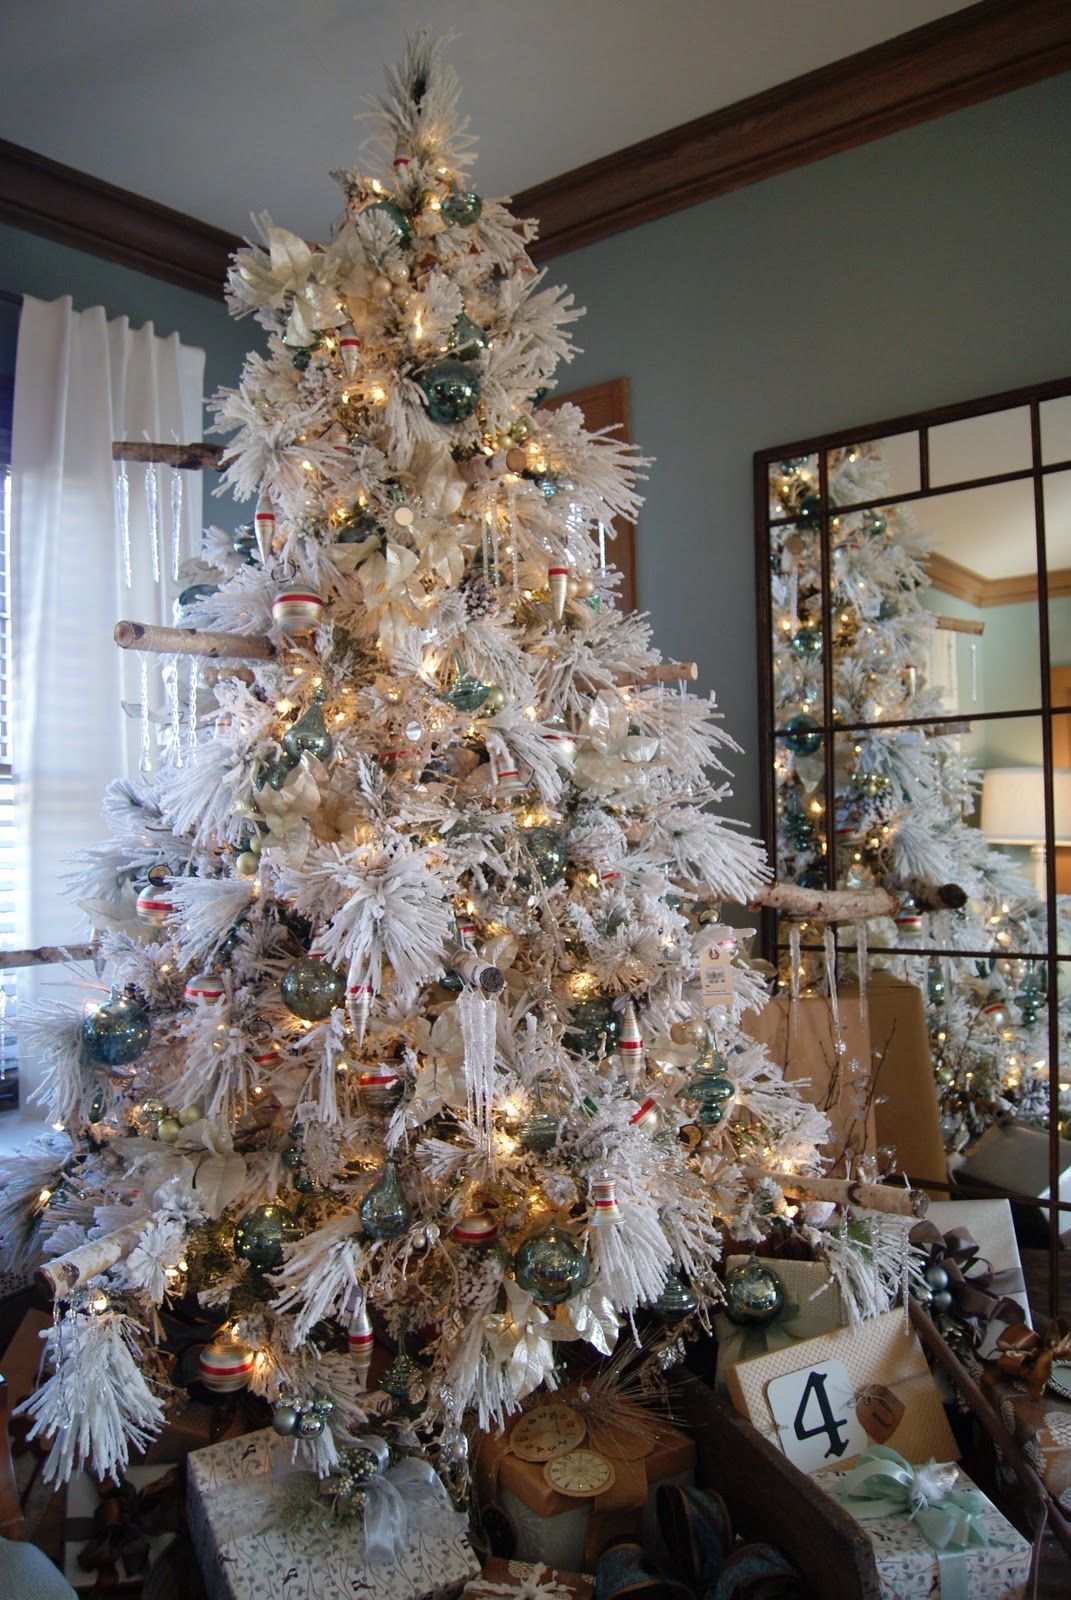 125 Christmas Tree Decorations Ideas For 2016